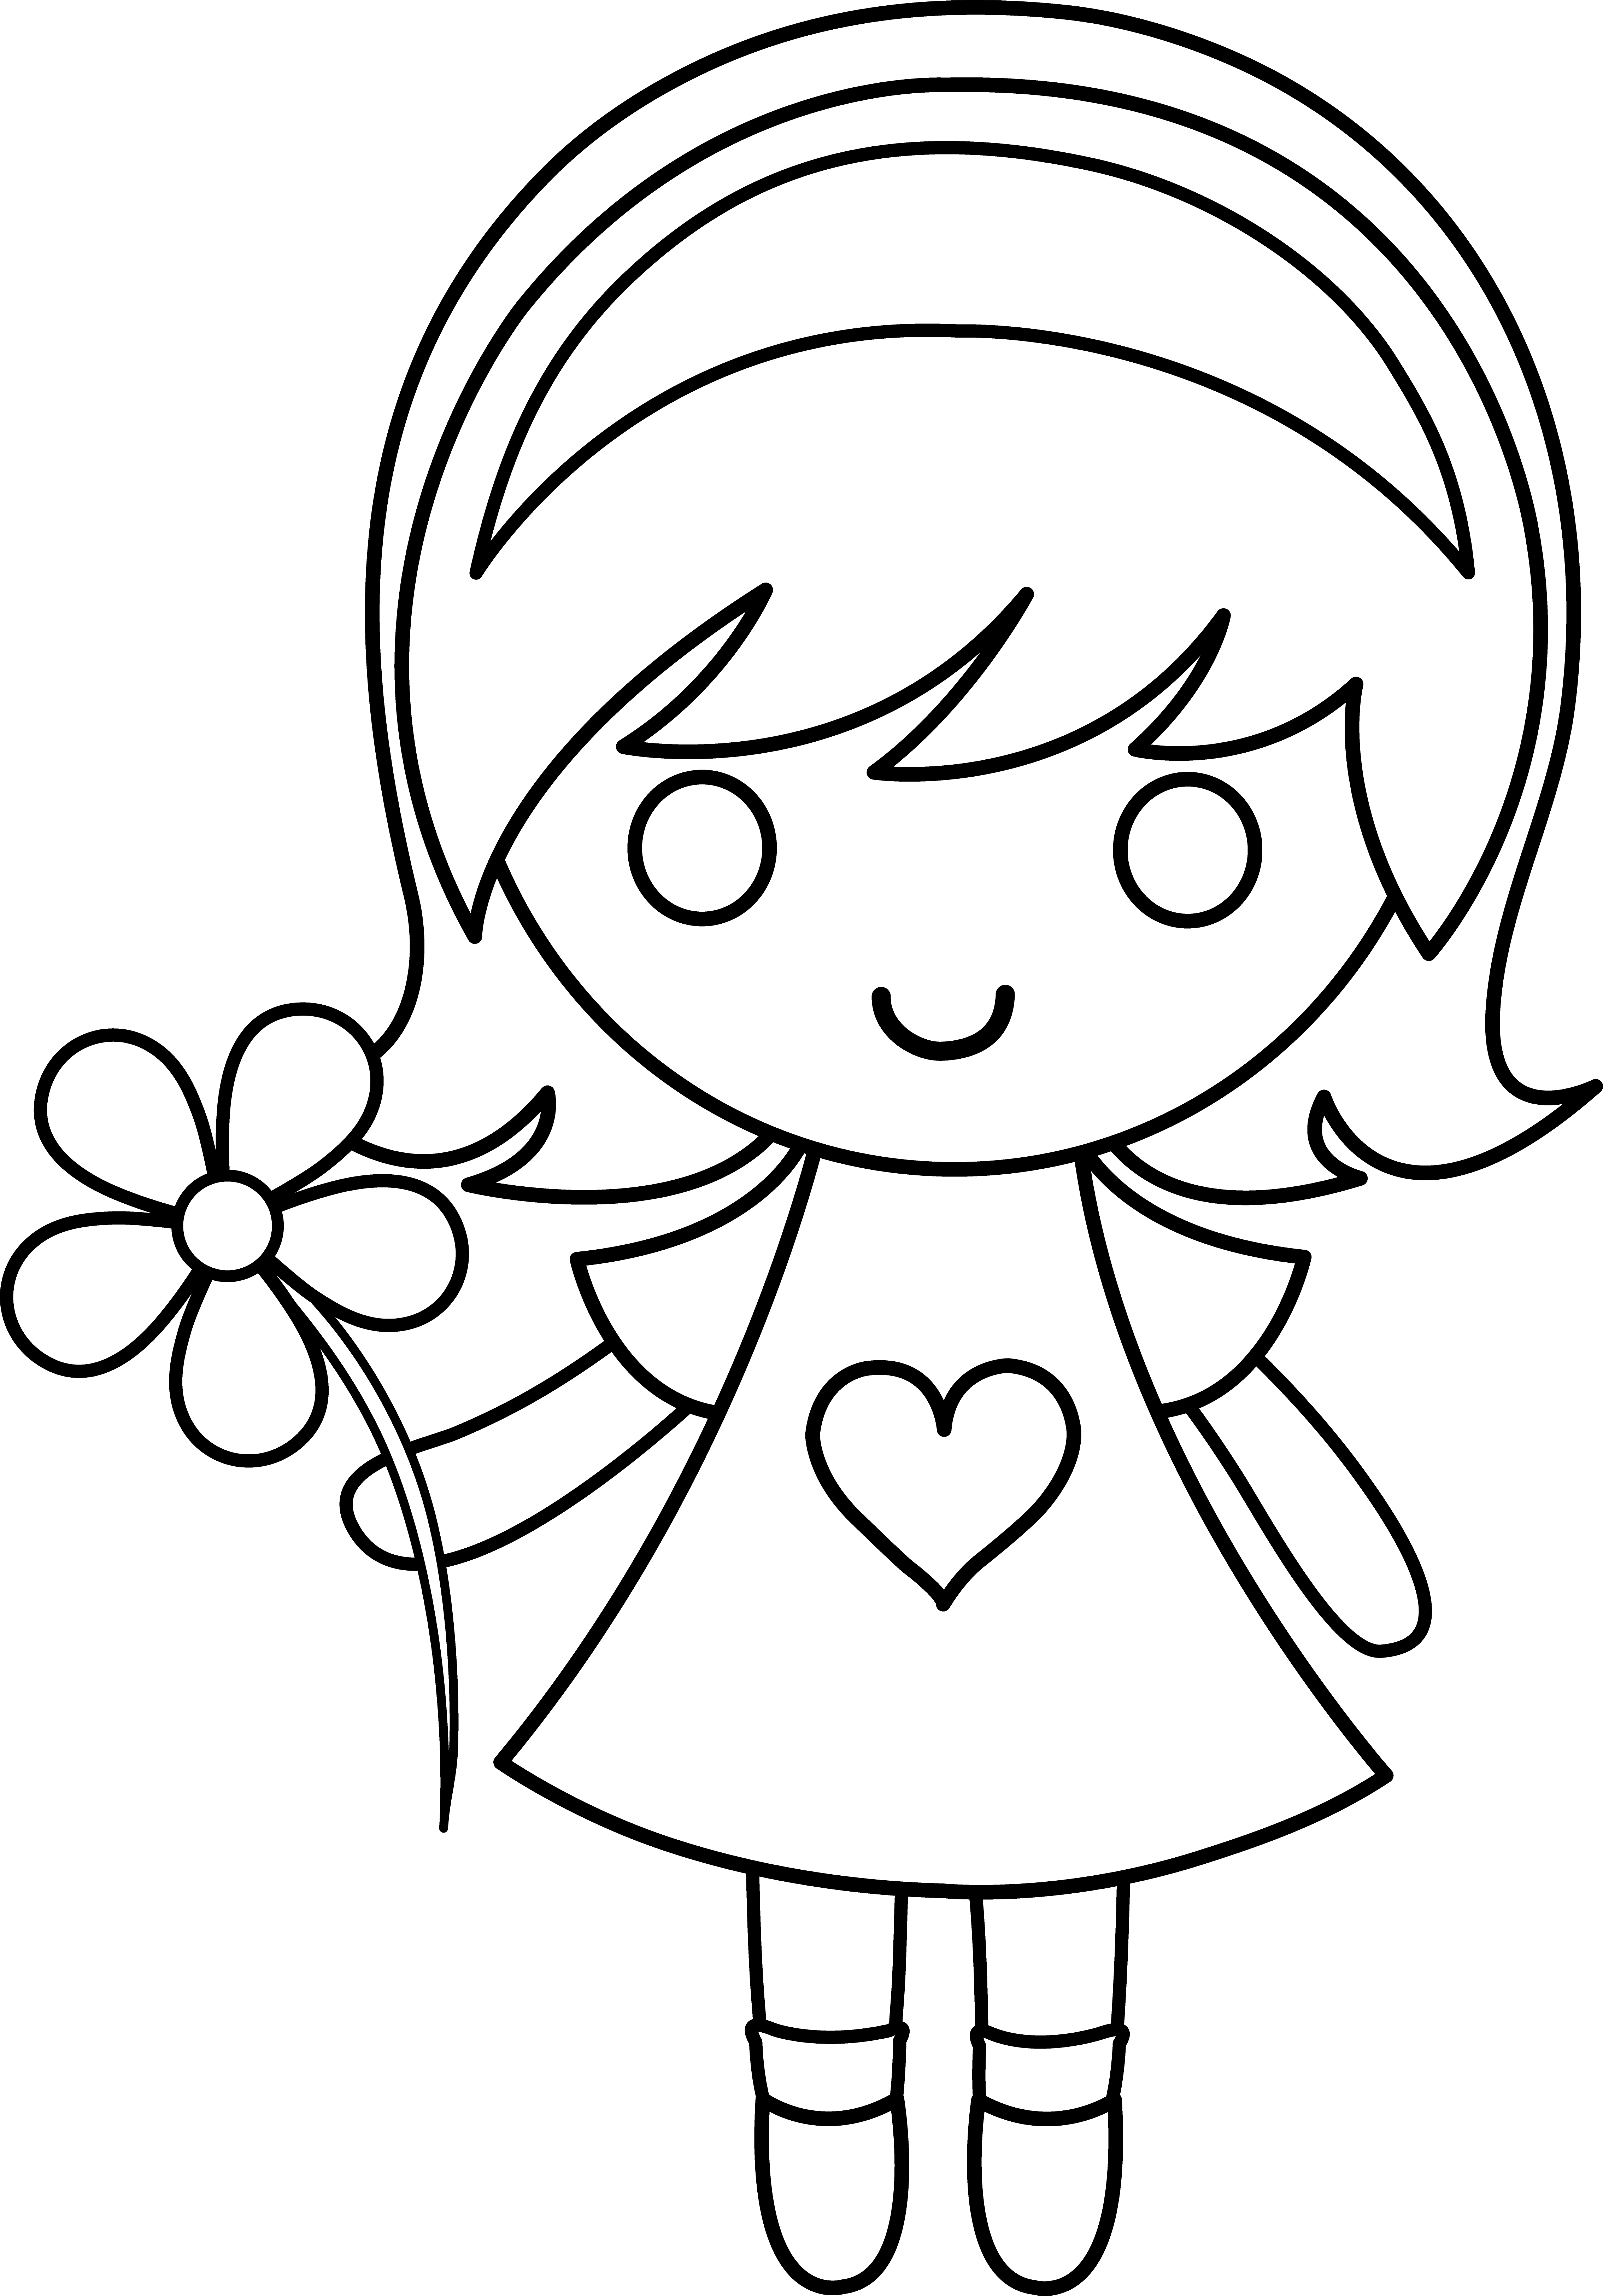 girls colouring pictures coloring page trendy girls colouring pictures girls